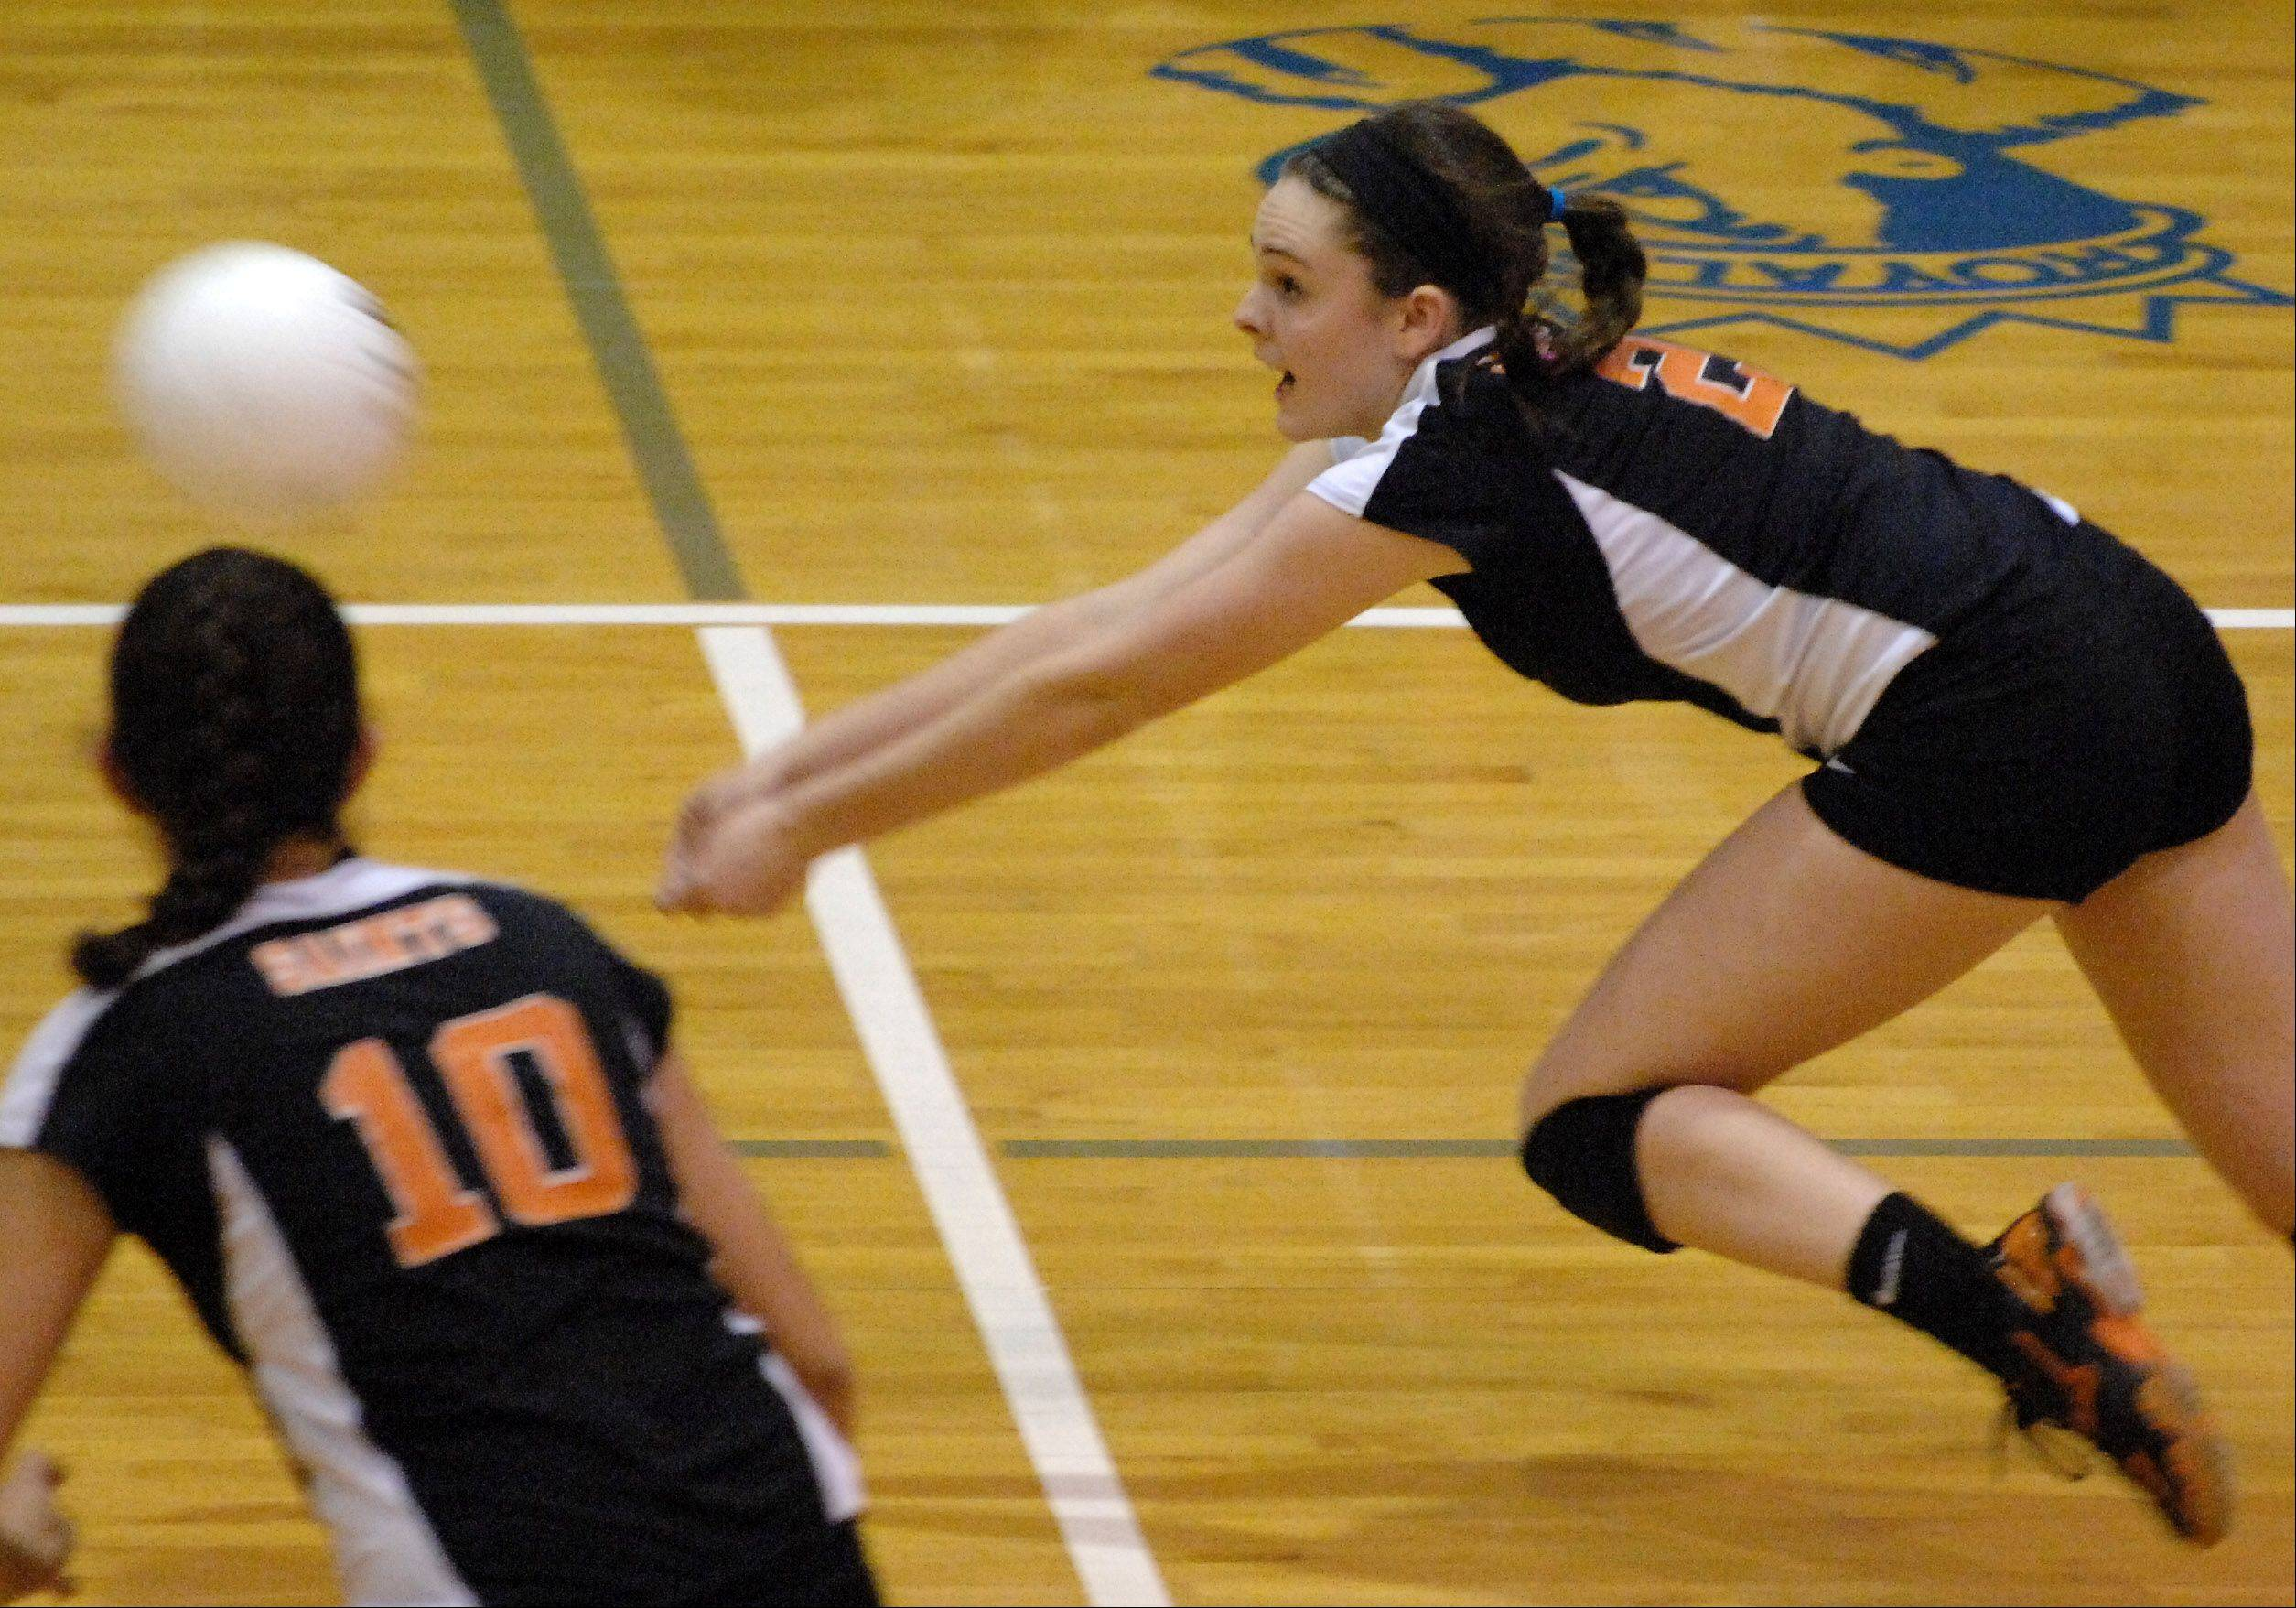 St. Charles East's Katie Kull lunges for the ball during Tuesday's sectional semifinals at Larkin High School in Elgin.